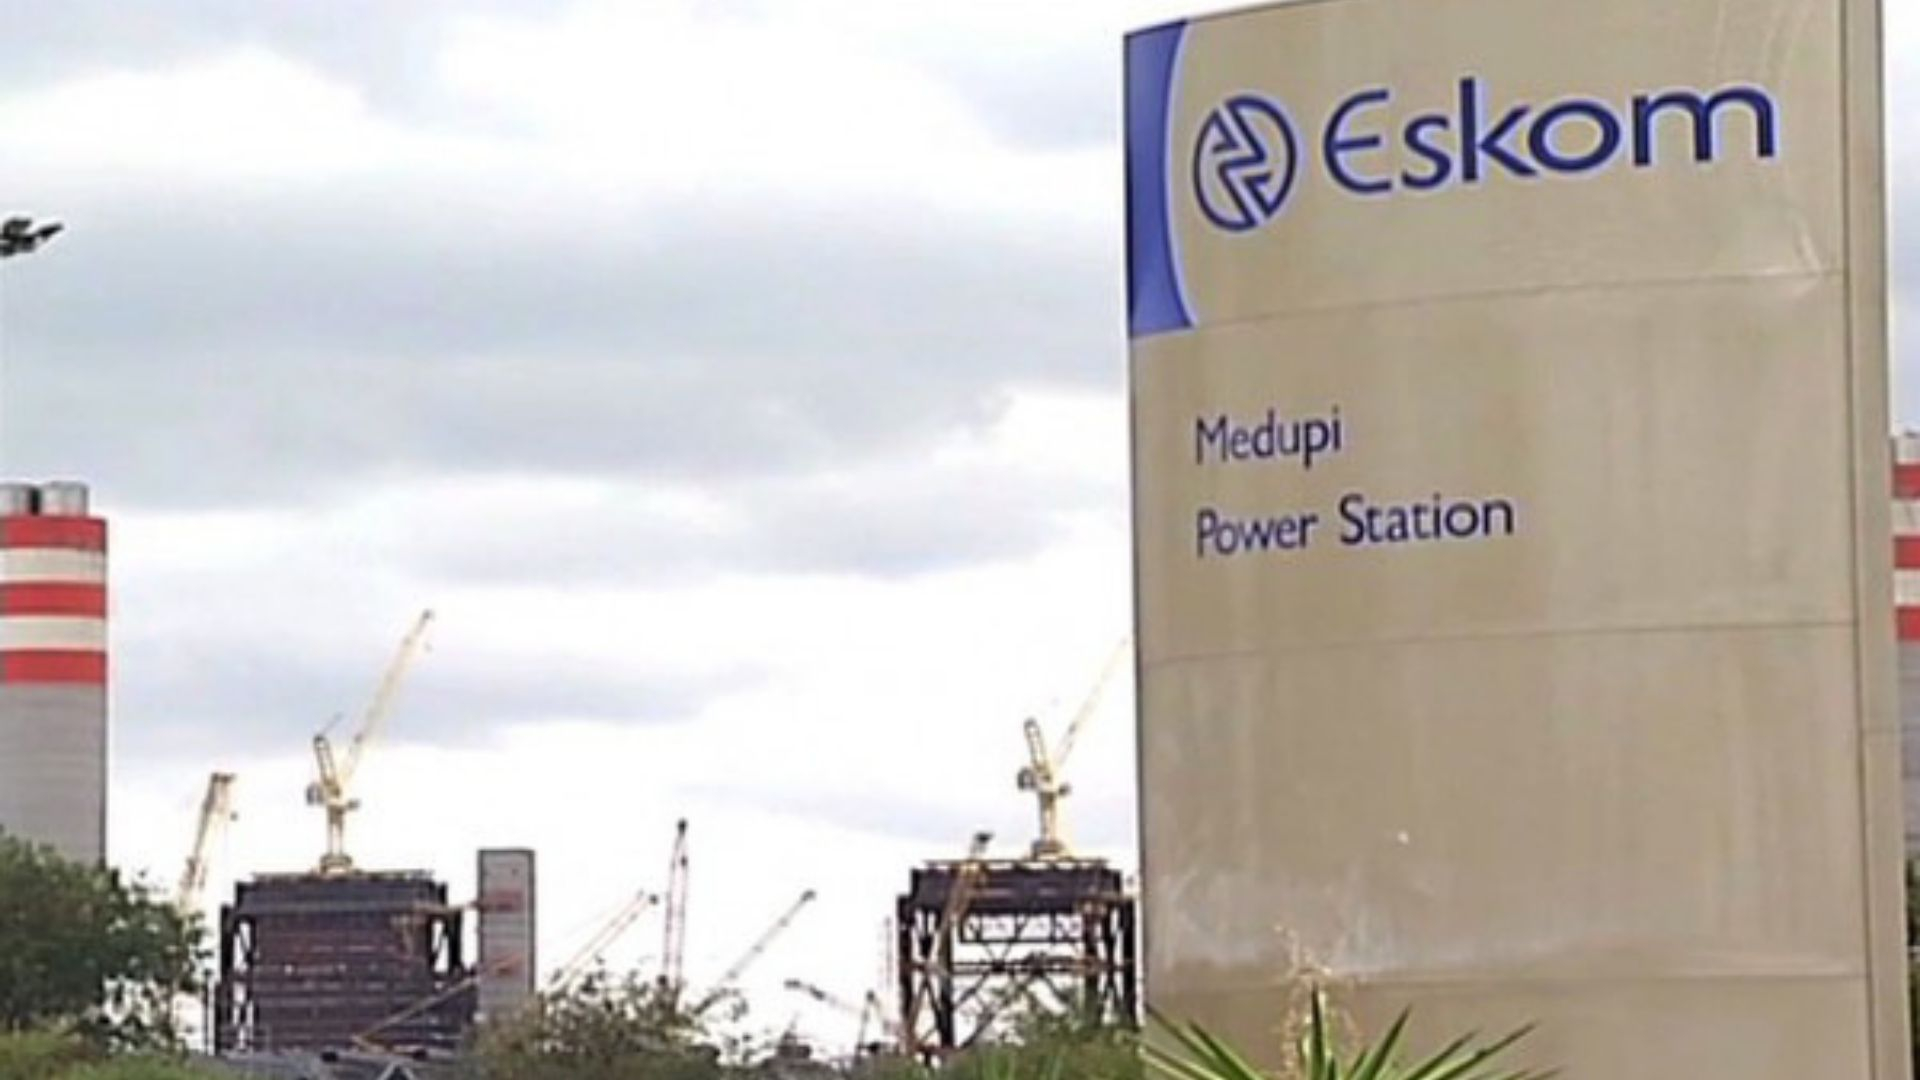 South Africa's Eskom extends power cuts into Monday